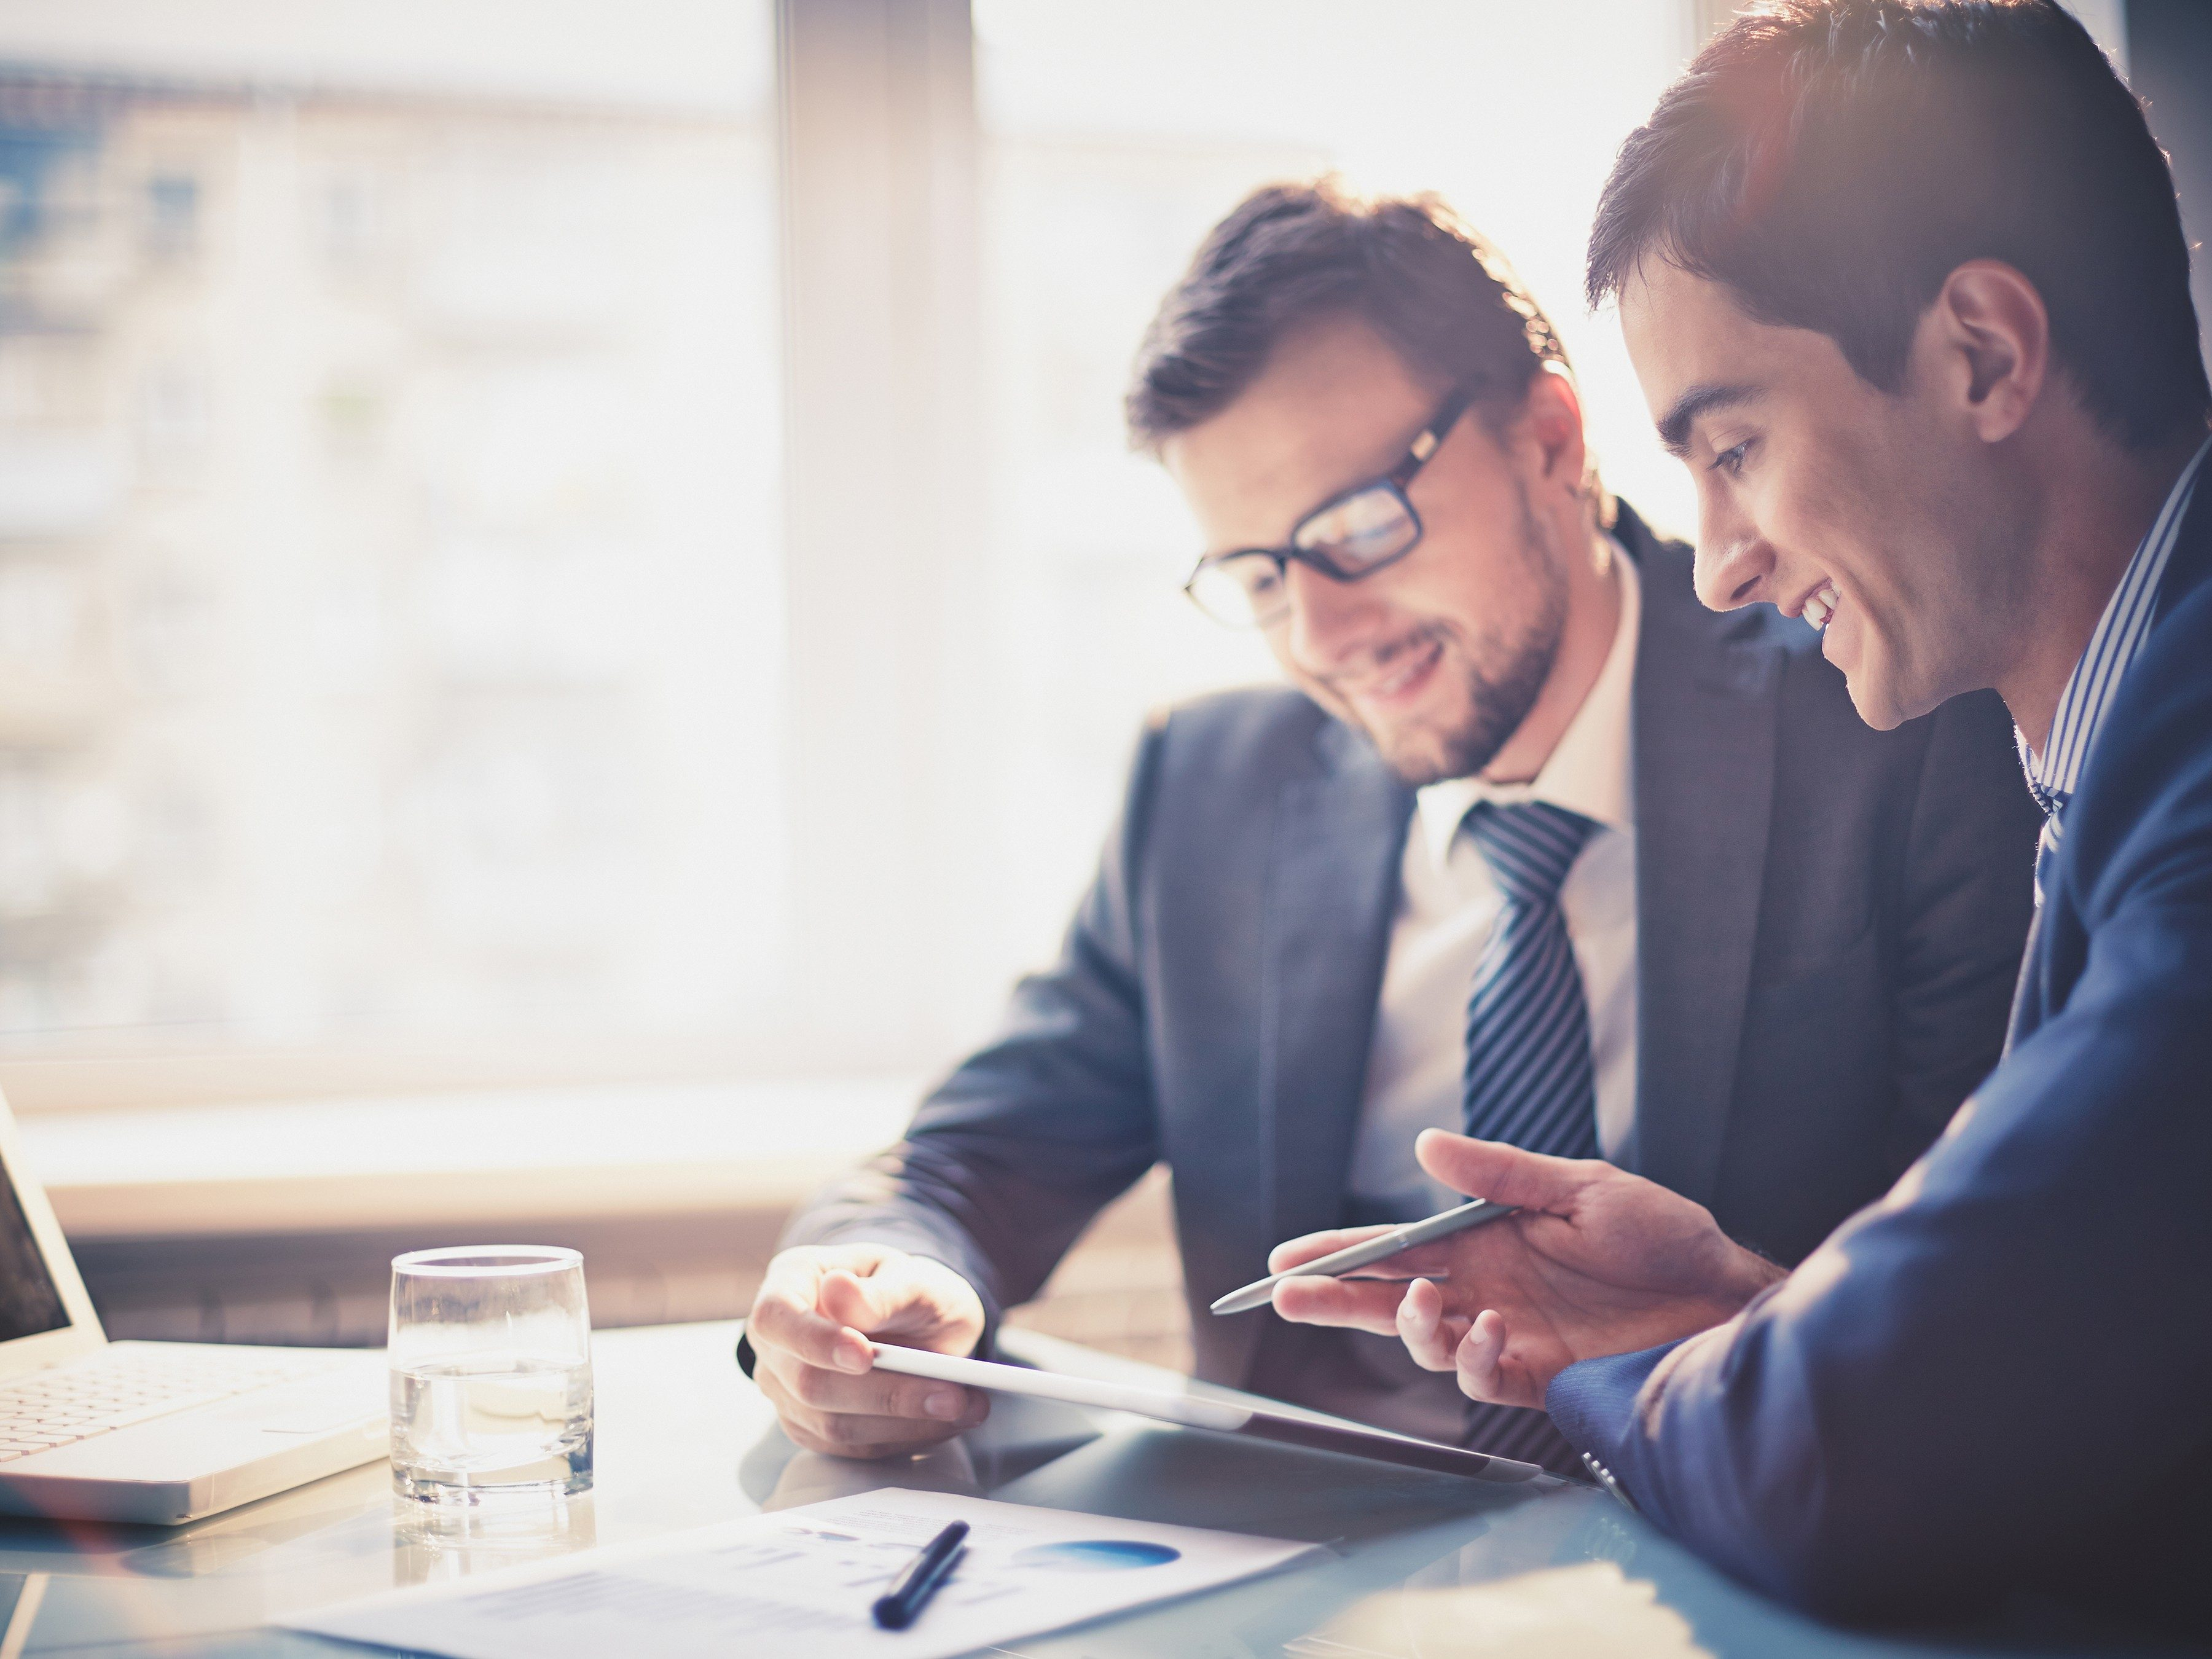 Make meaningful connections with your co-workers